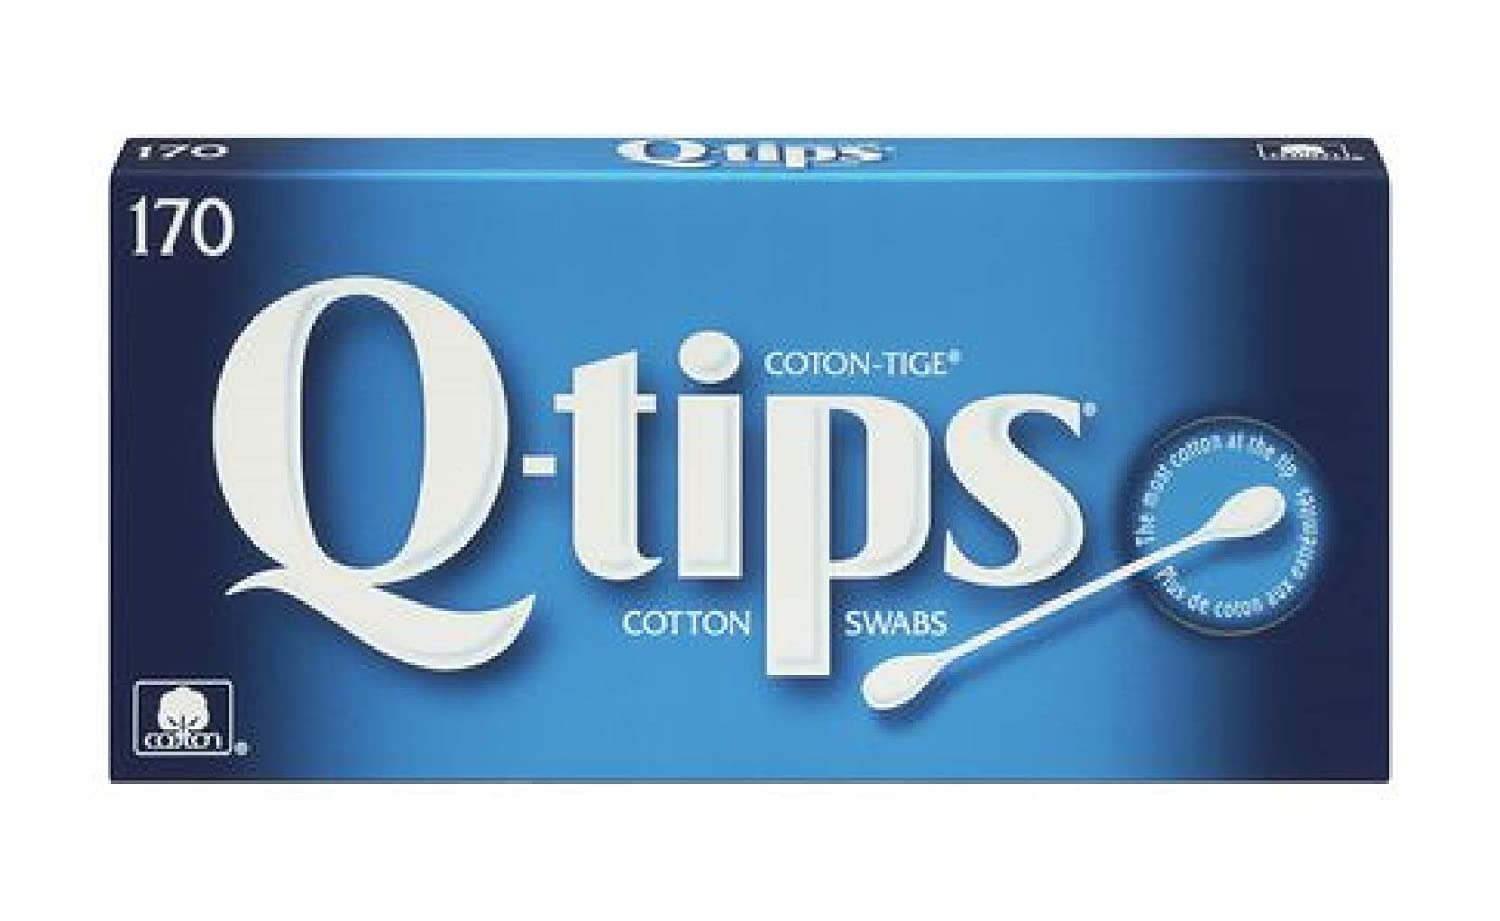 Q-Tips Cotton Swabs 170 counts, 2 packs Unilever